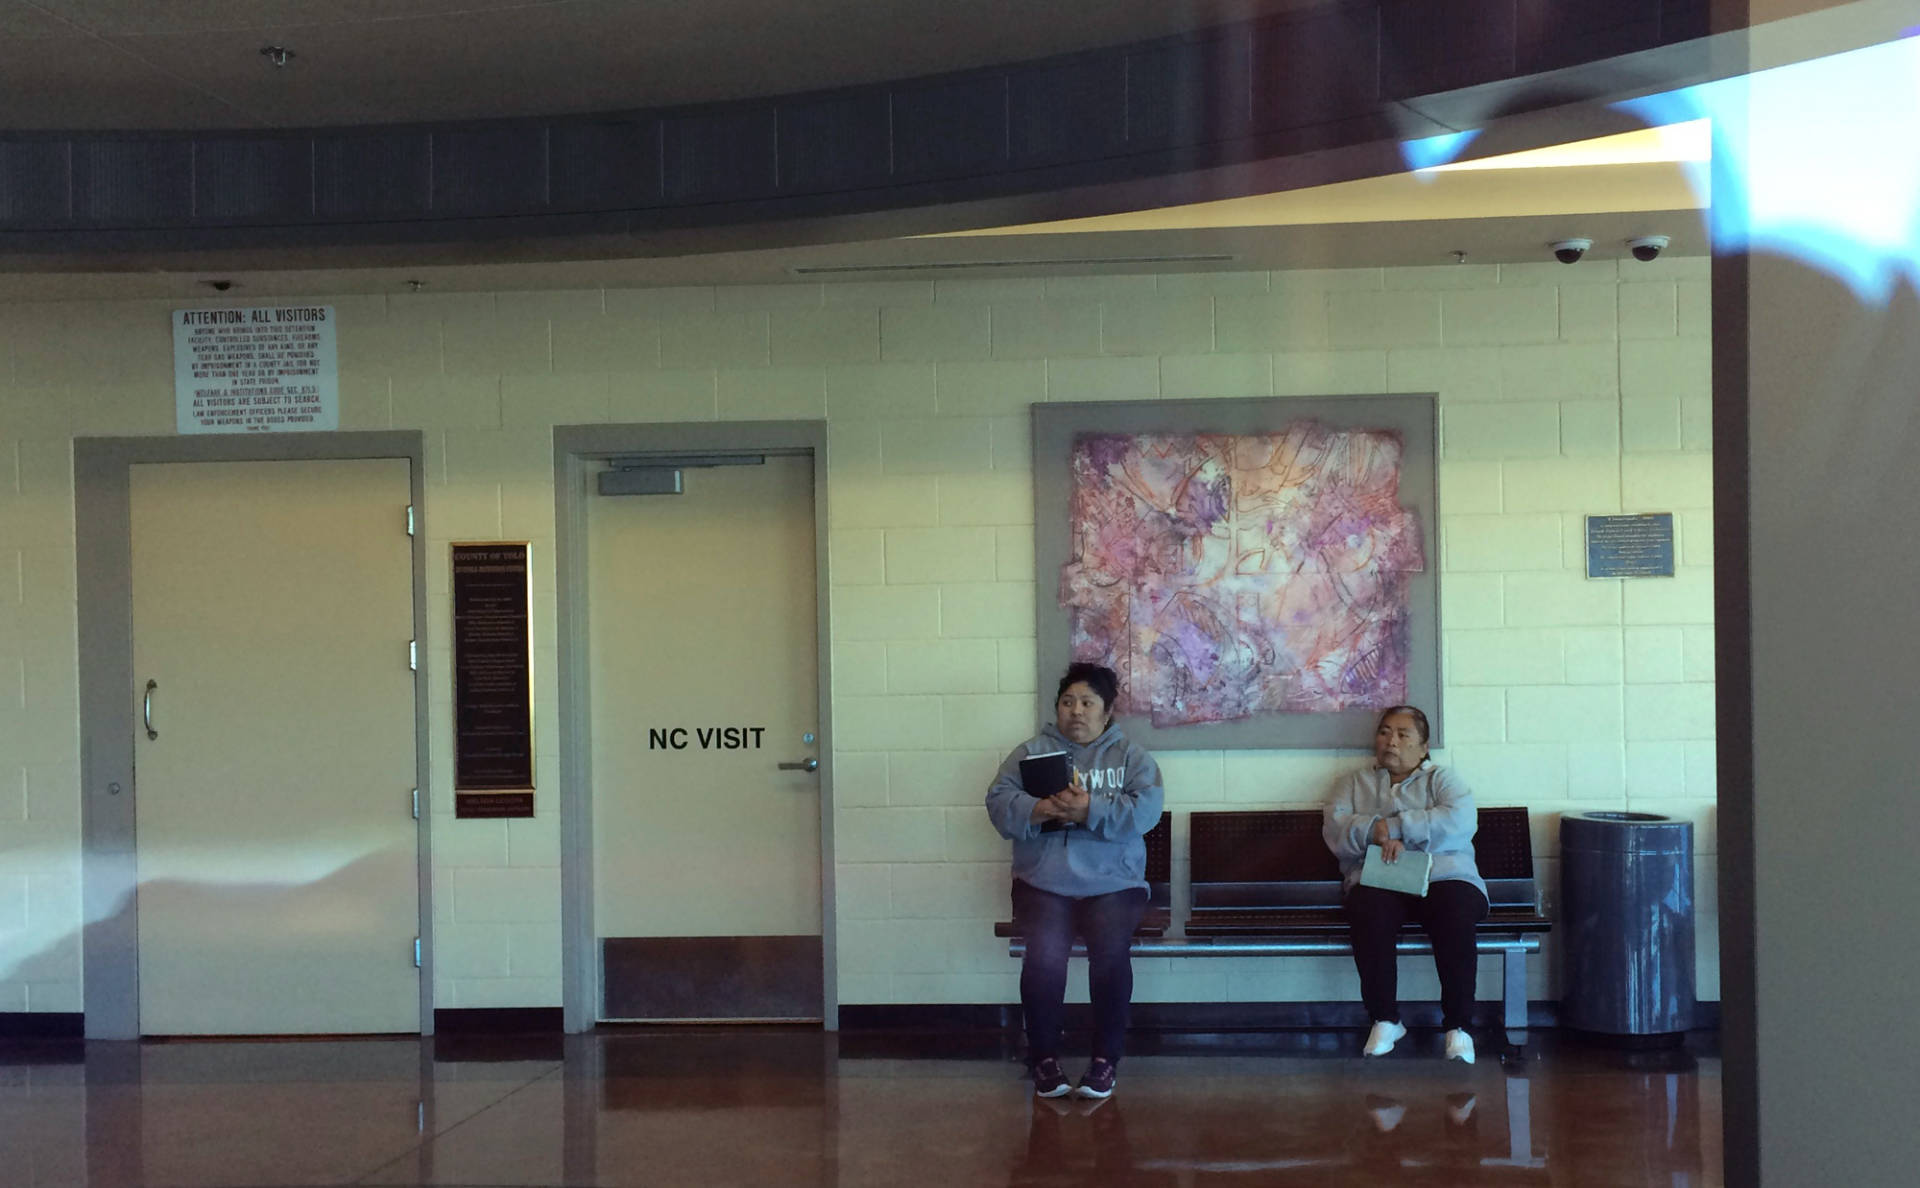 Pablo Aguilar's mother, Evelyn, and grandmother, Albertina, wait in the lobby of the Yolo County Juvenile Detention Facility to visit Pablo, who has been locked in confinement by the Office of Refugee Resettlement since June of 2014. Tyche Hendricks/KQED